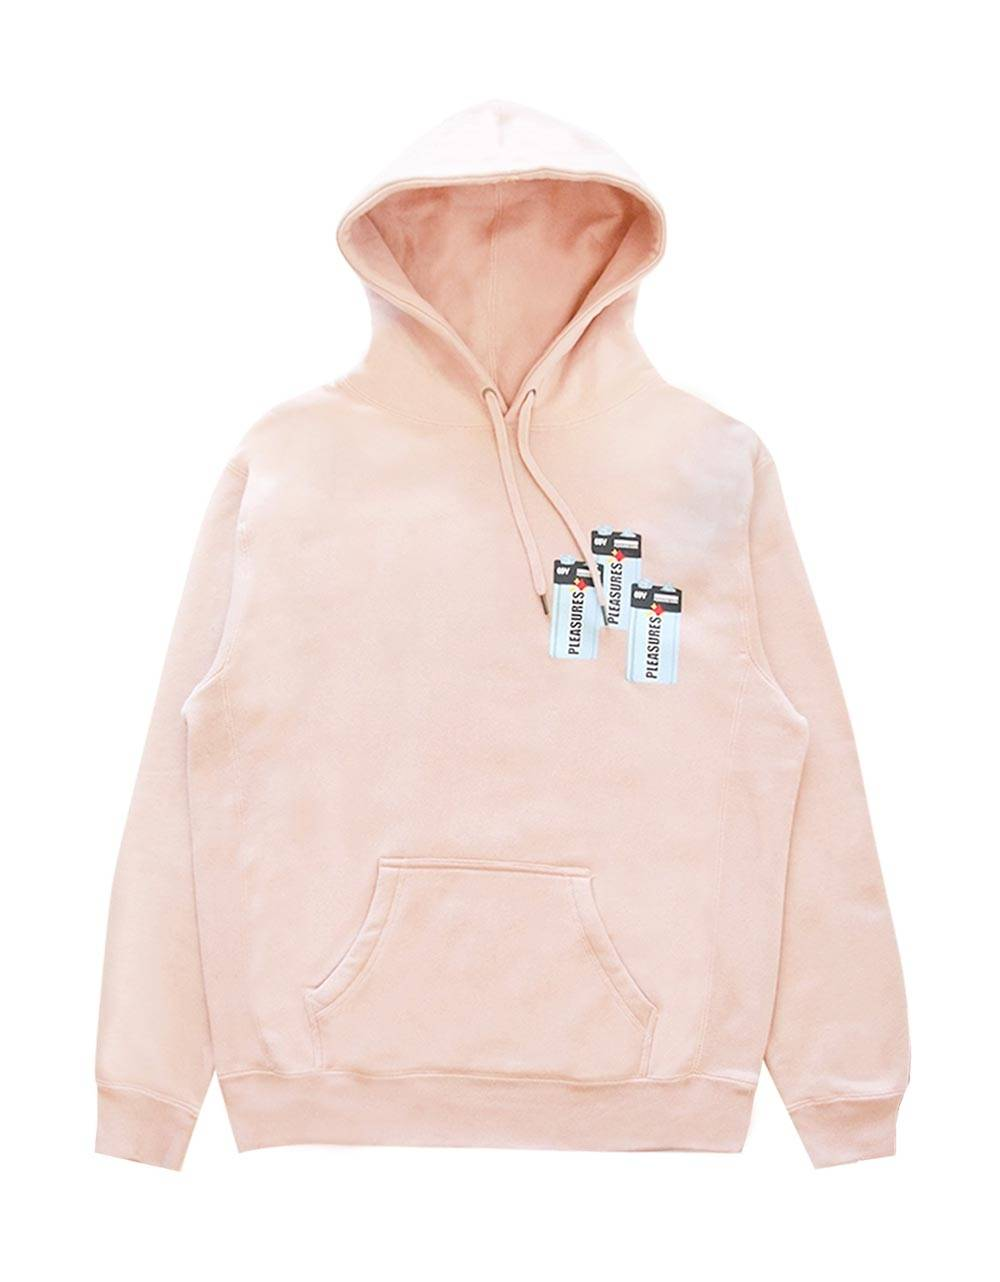 Pleasures Charge premium hoodie - dusty rose Pleasures Sweater 145,00 €